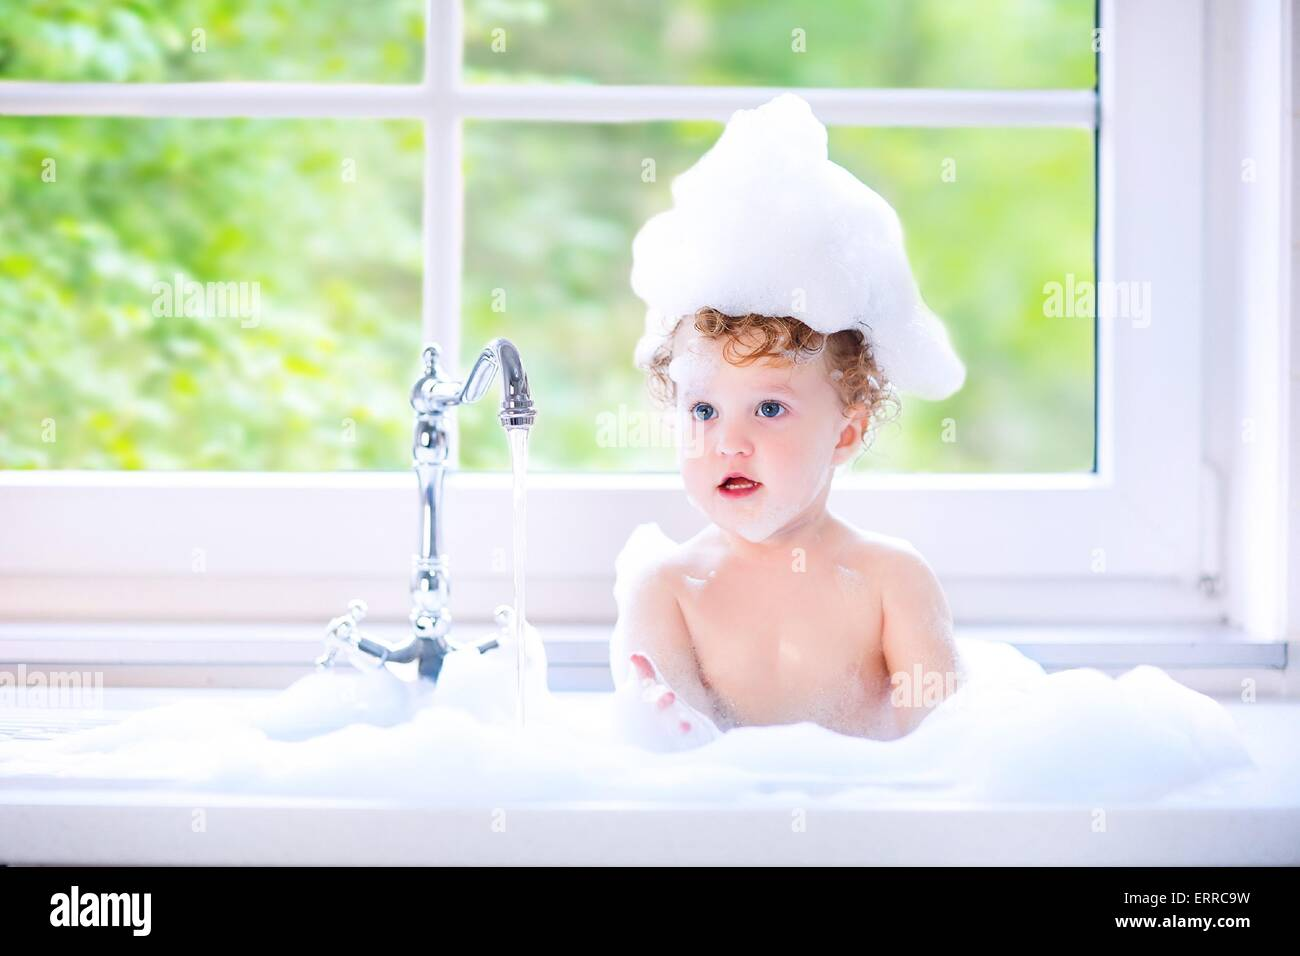 funny little baby girl with wet curly hair taking bath in a